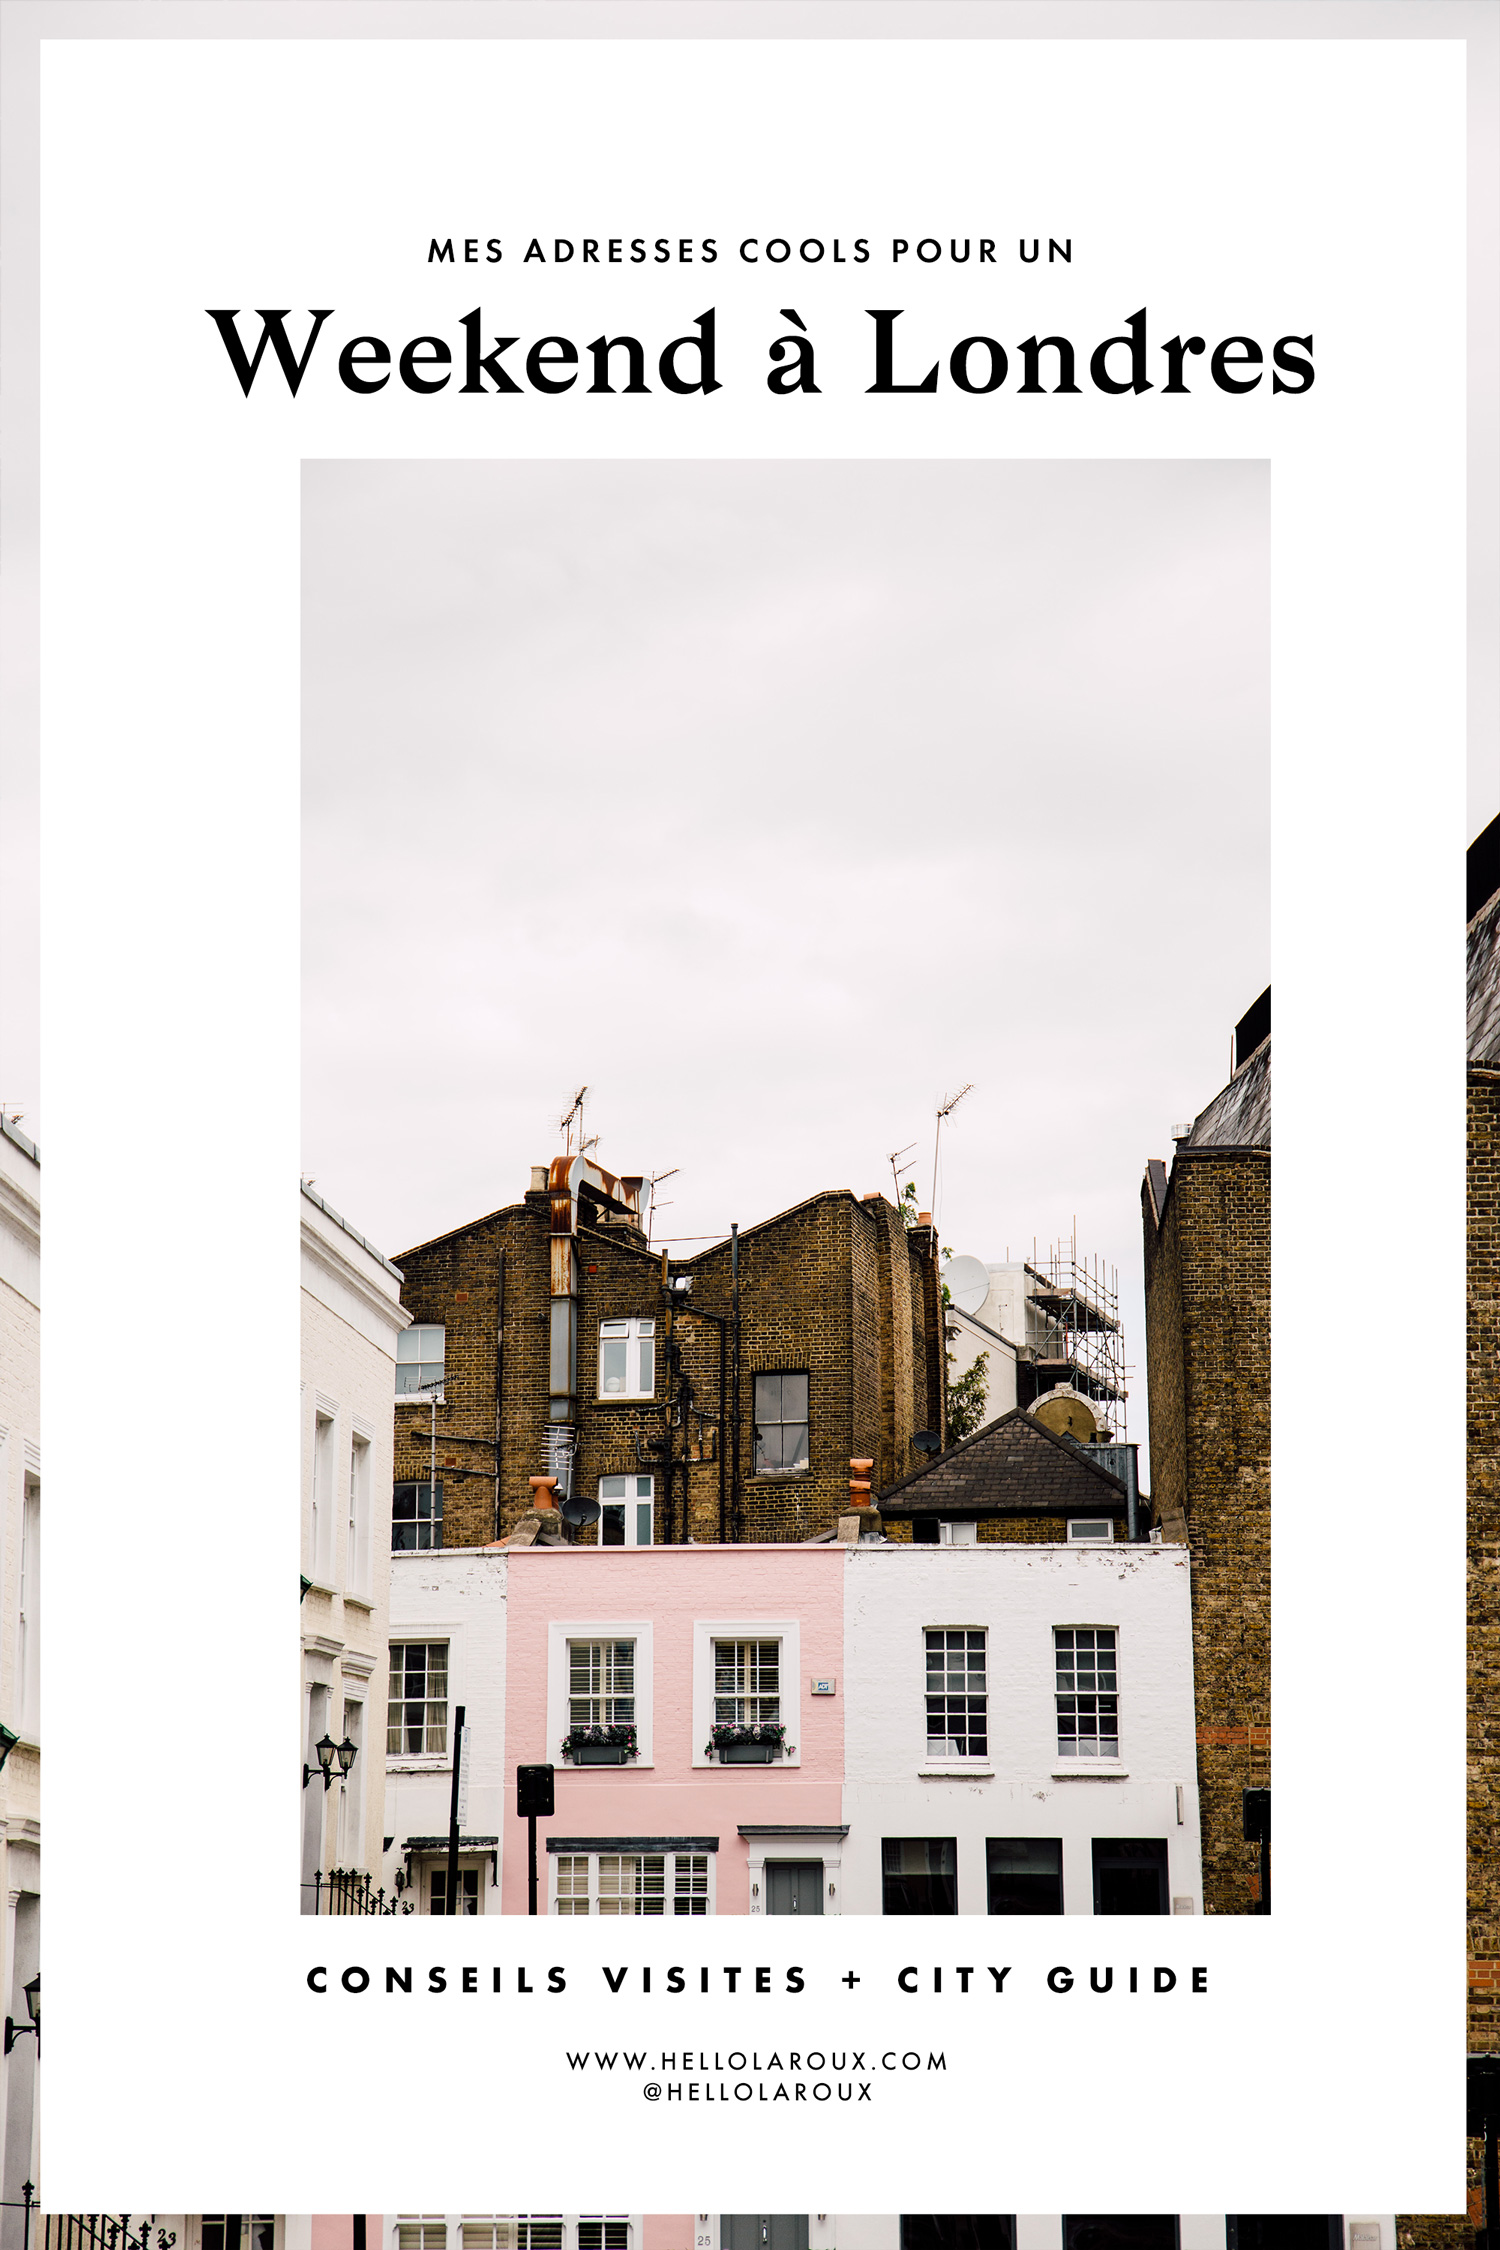 Adresses cools pour un weekend à Londres